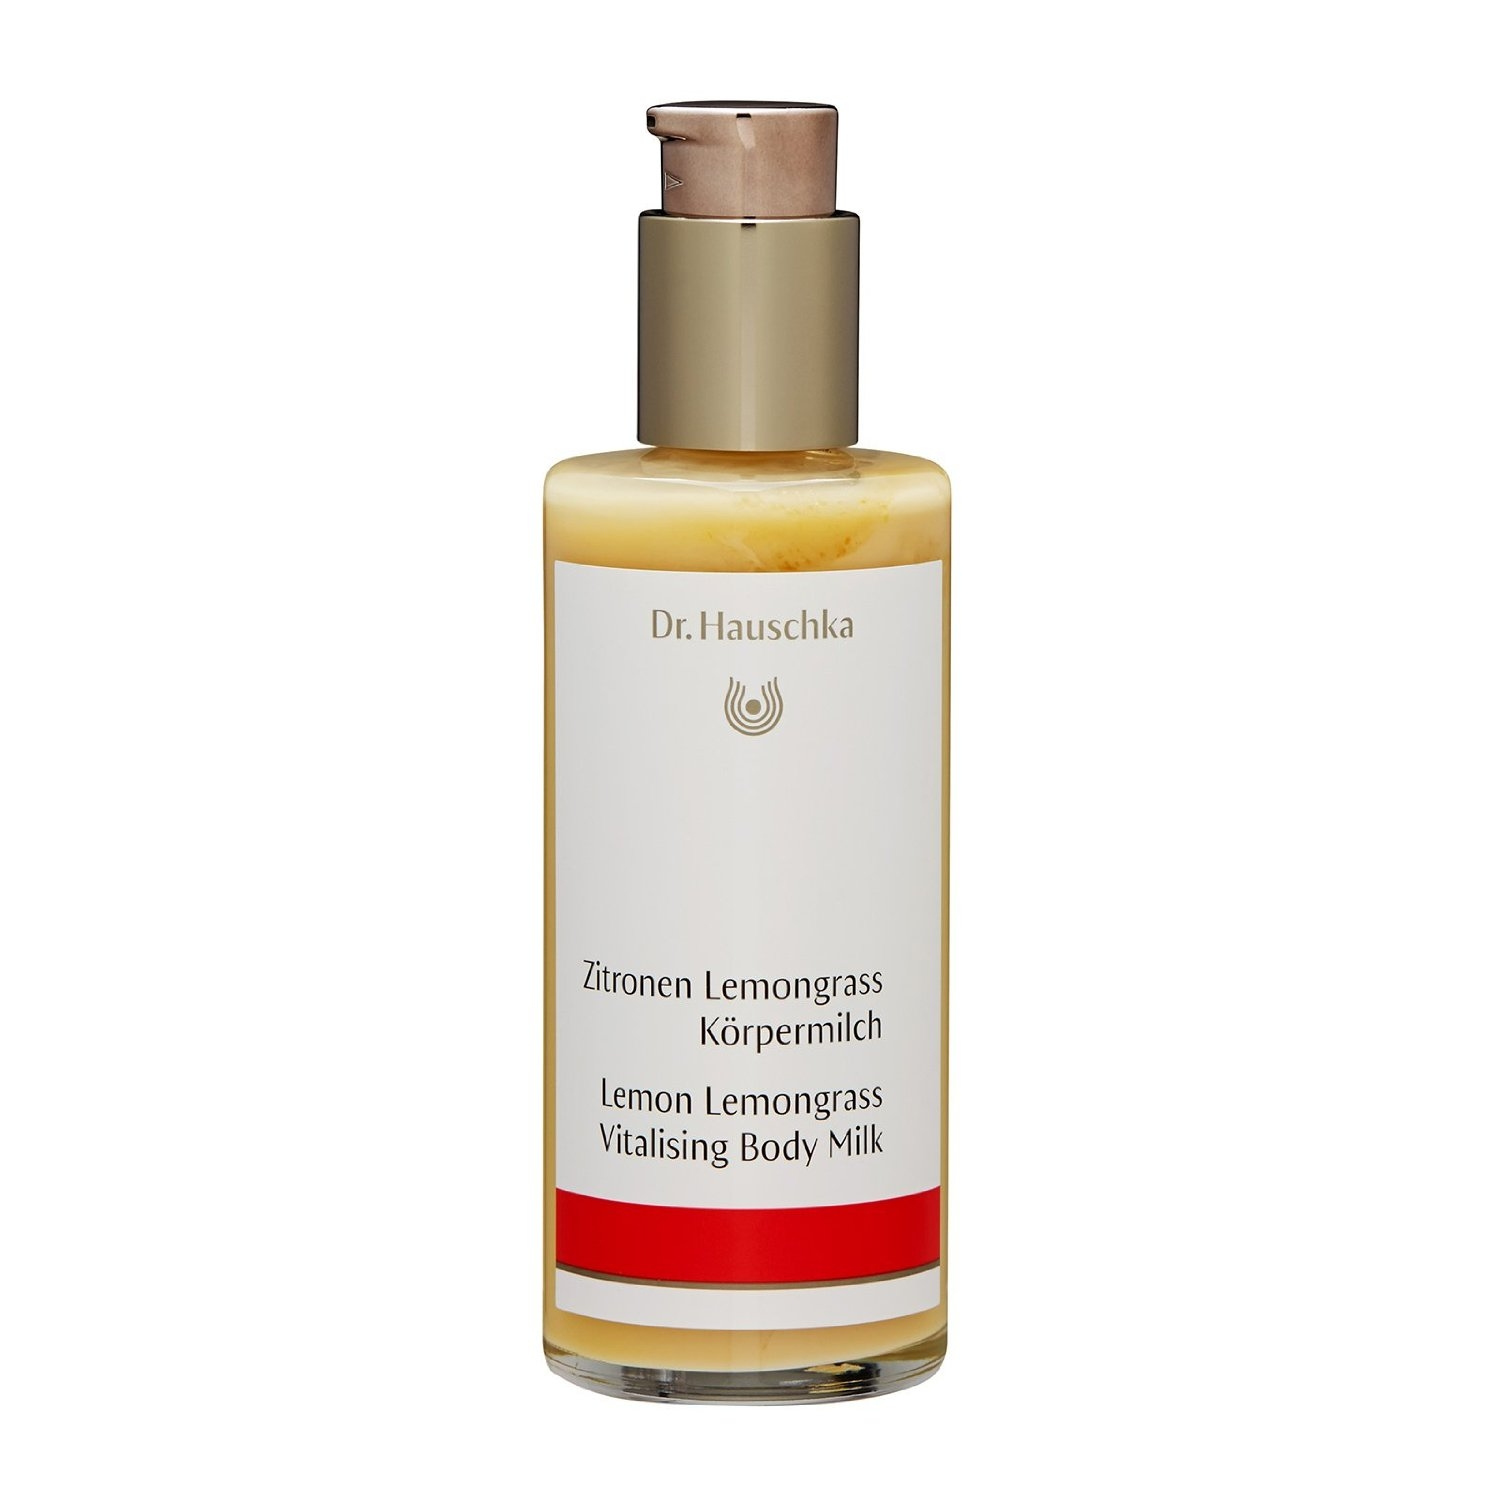 Lemon Lemongrass Vitalizing Body Milk 20150820 131000